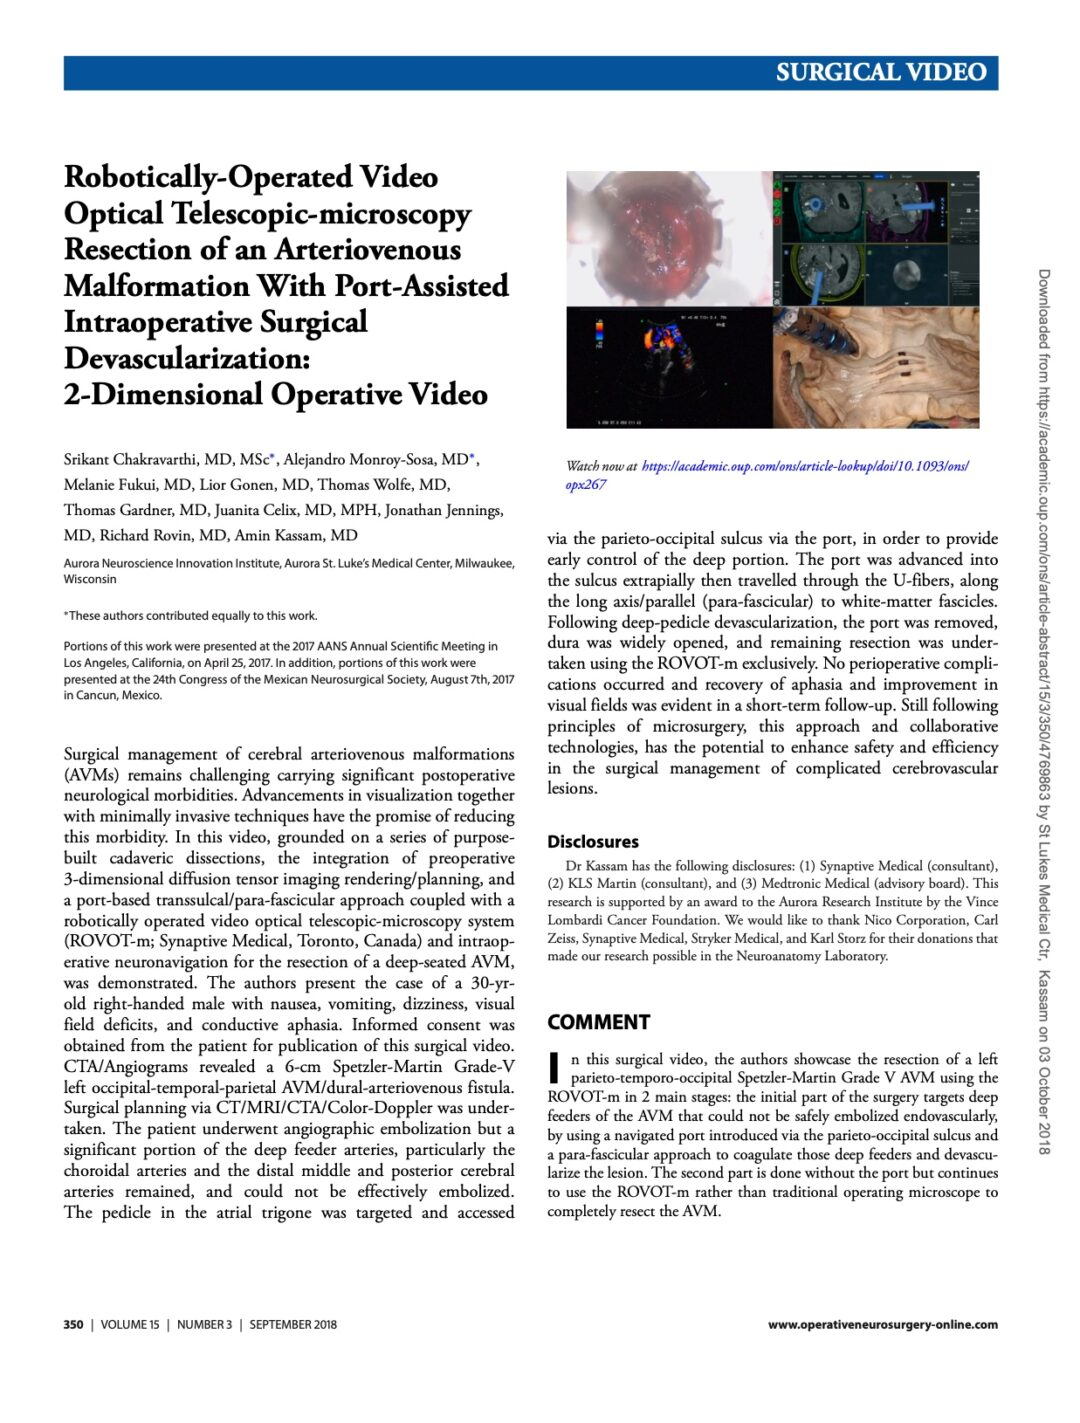 Robotically-Operated Video Optical Telescopic-microscopy Resection of an Arteriovenous Malformation With Port-Assisted Intraoperative Surgical Devascularization: 2-Dimensional Operative Video